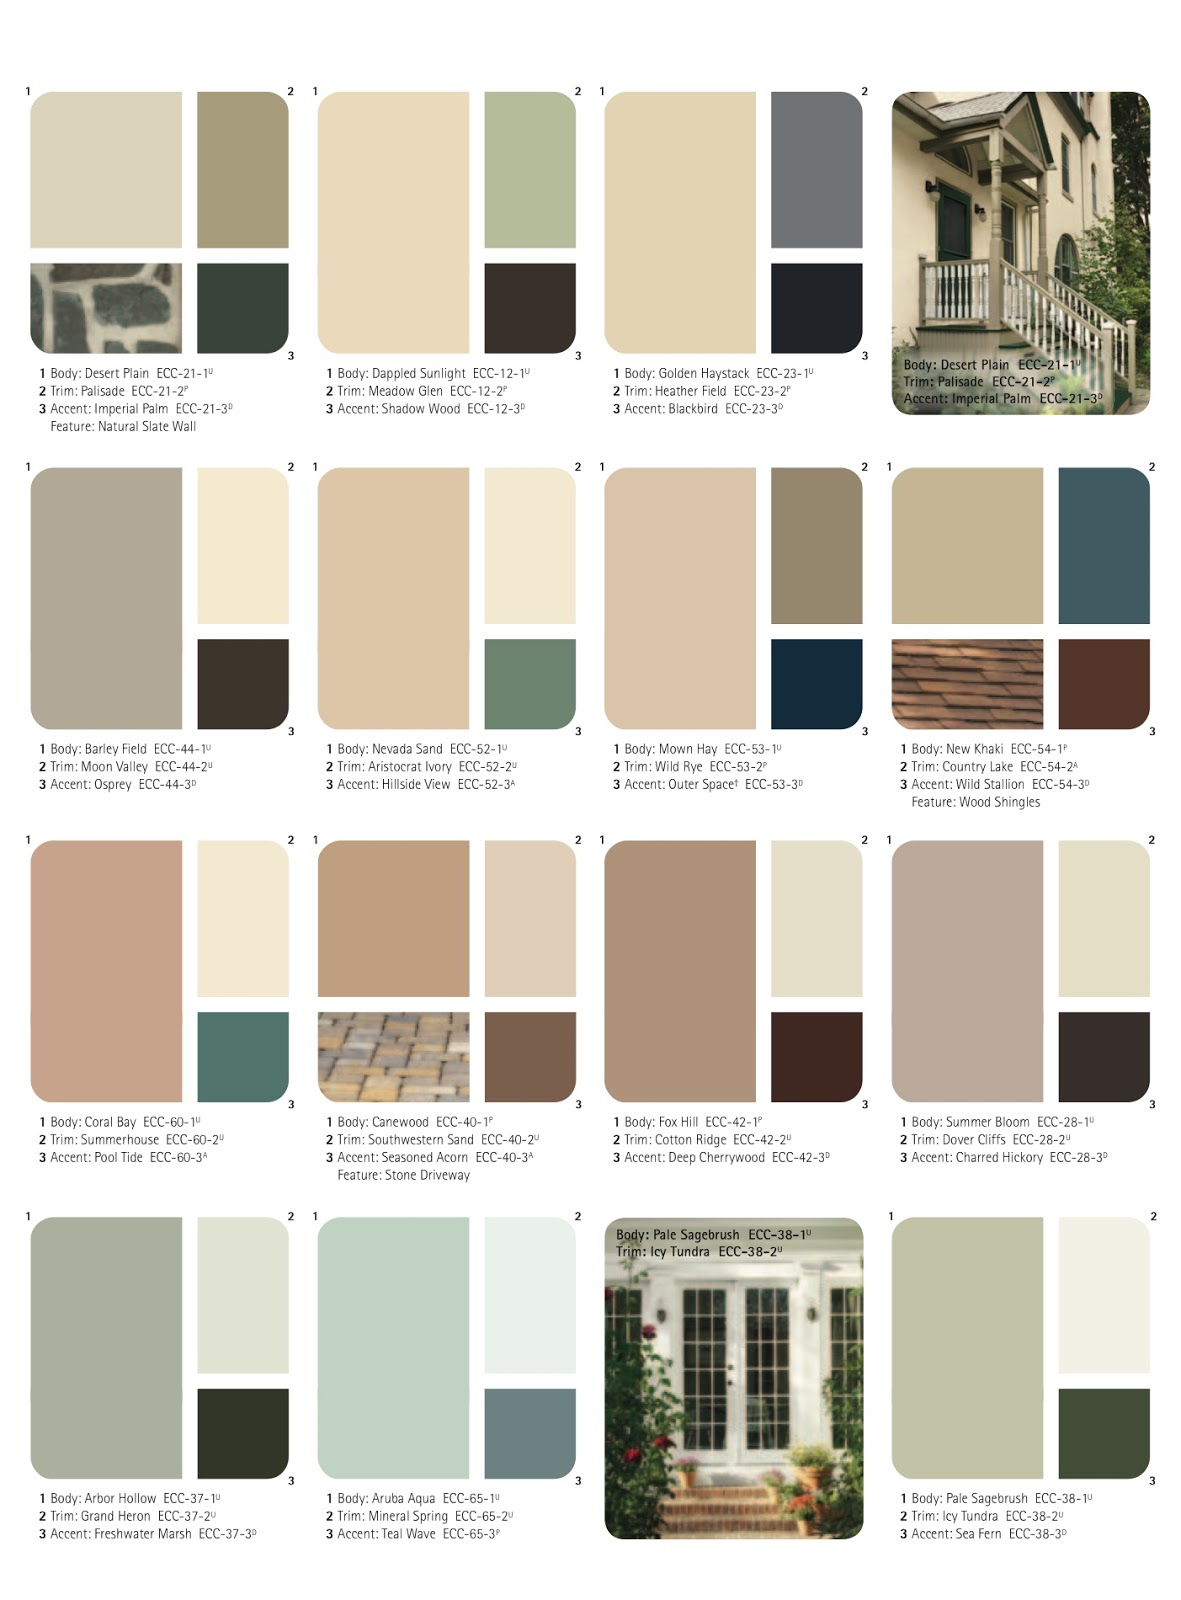 Exterior paint color schemes for brick homes home for Exterior house colors ideas photos